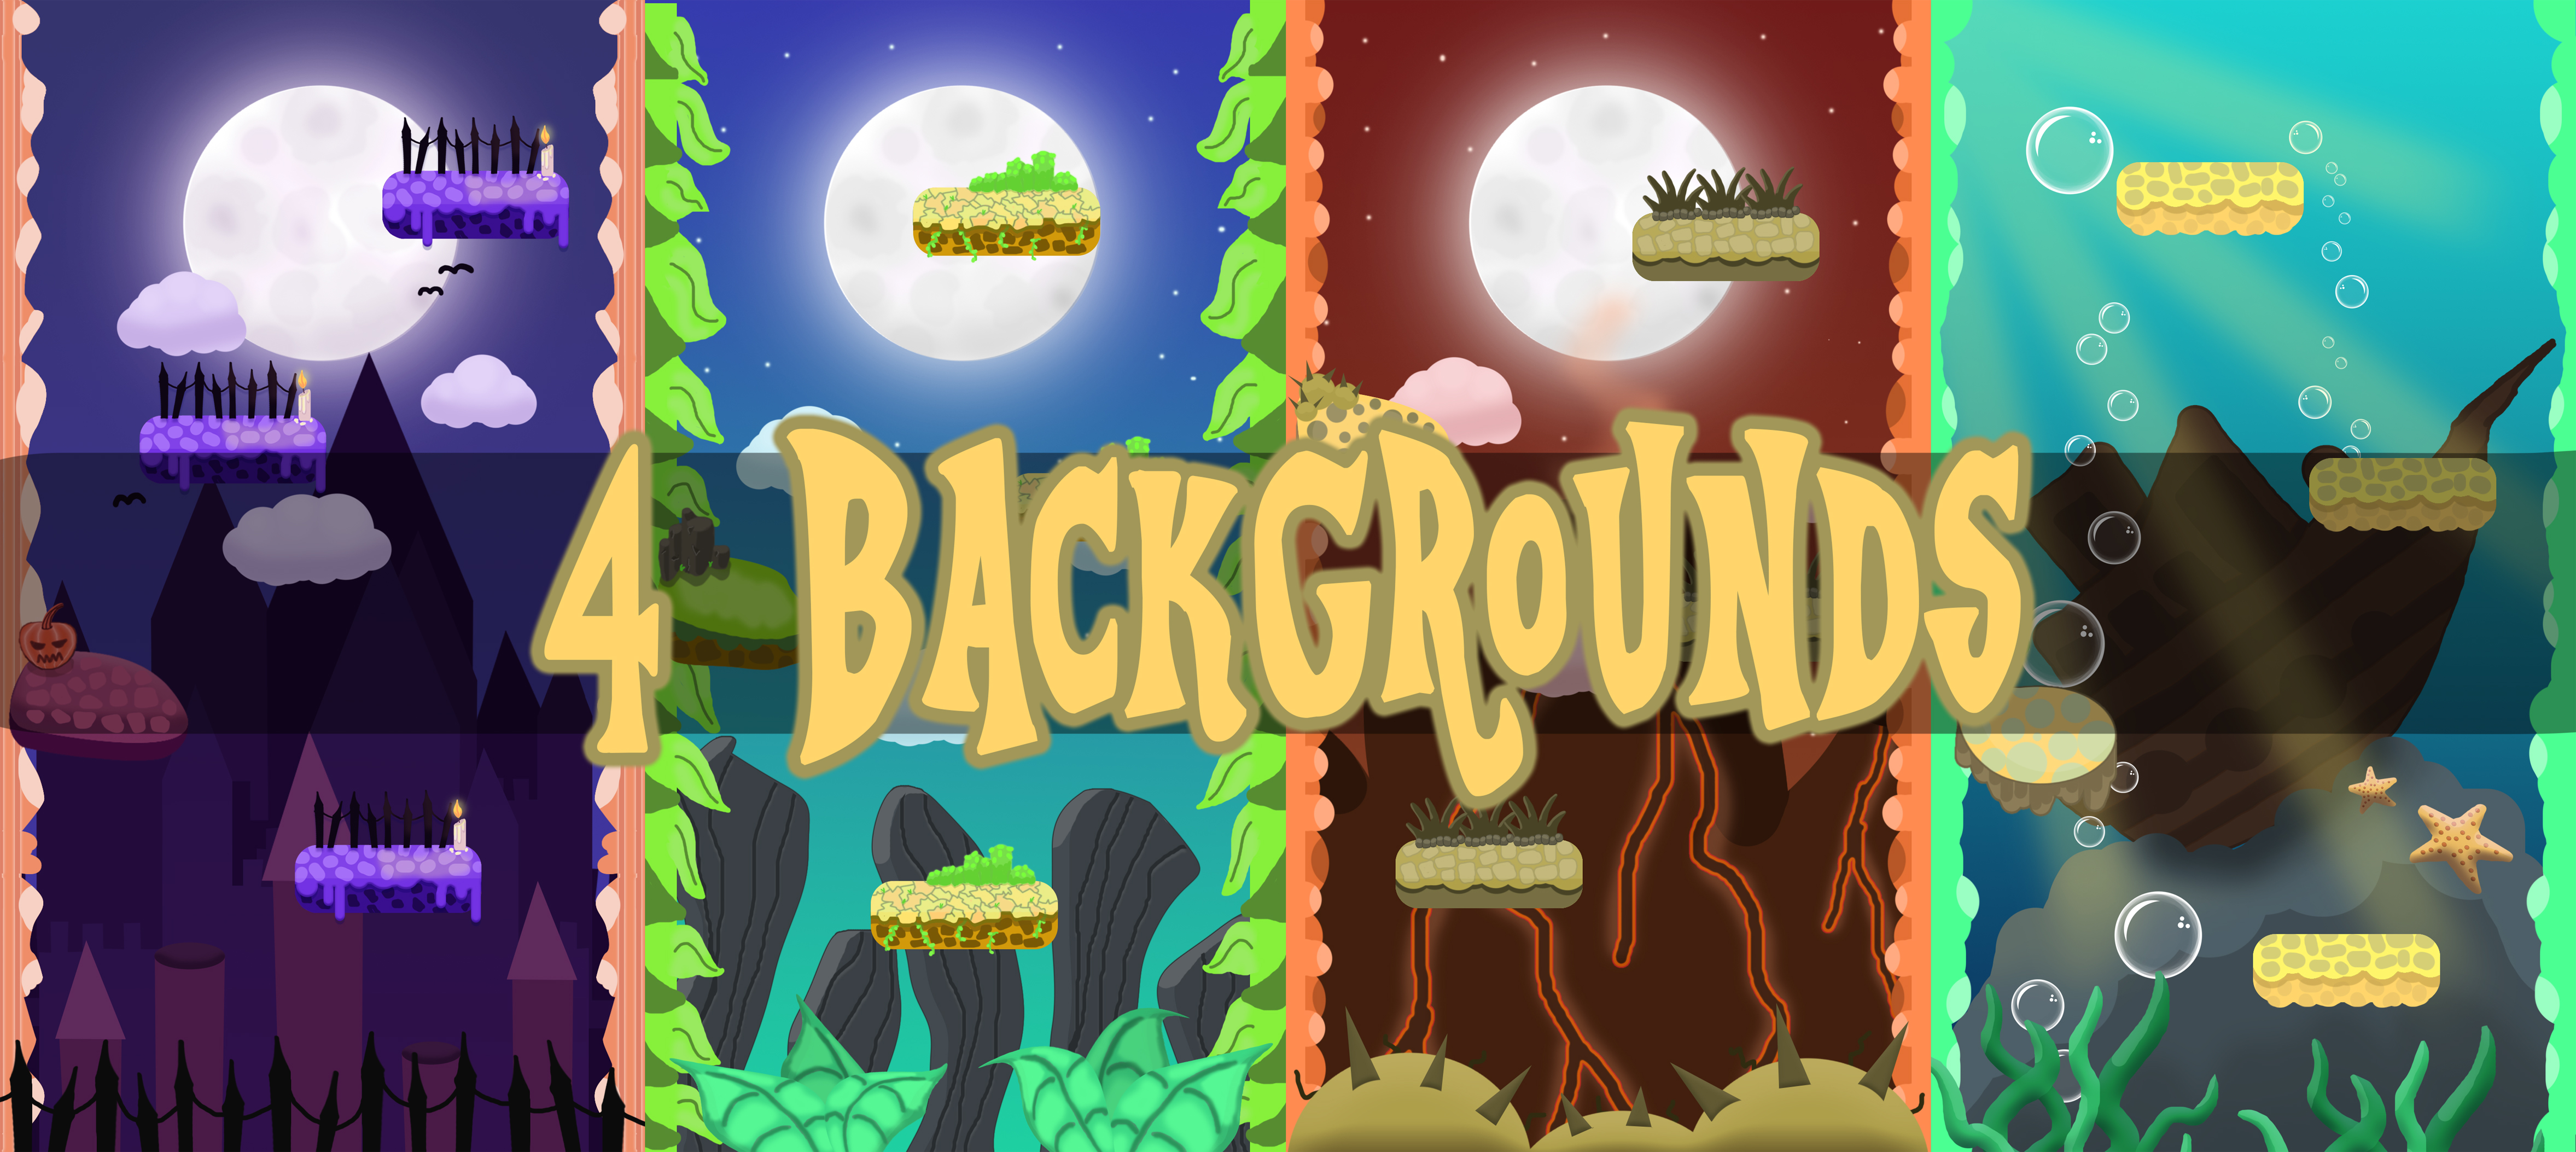 FREE 4 VERTICAL 2D GAME BACKGROUNDS